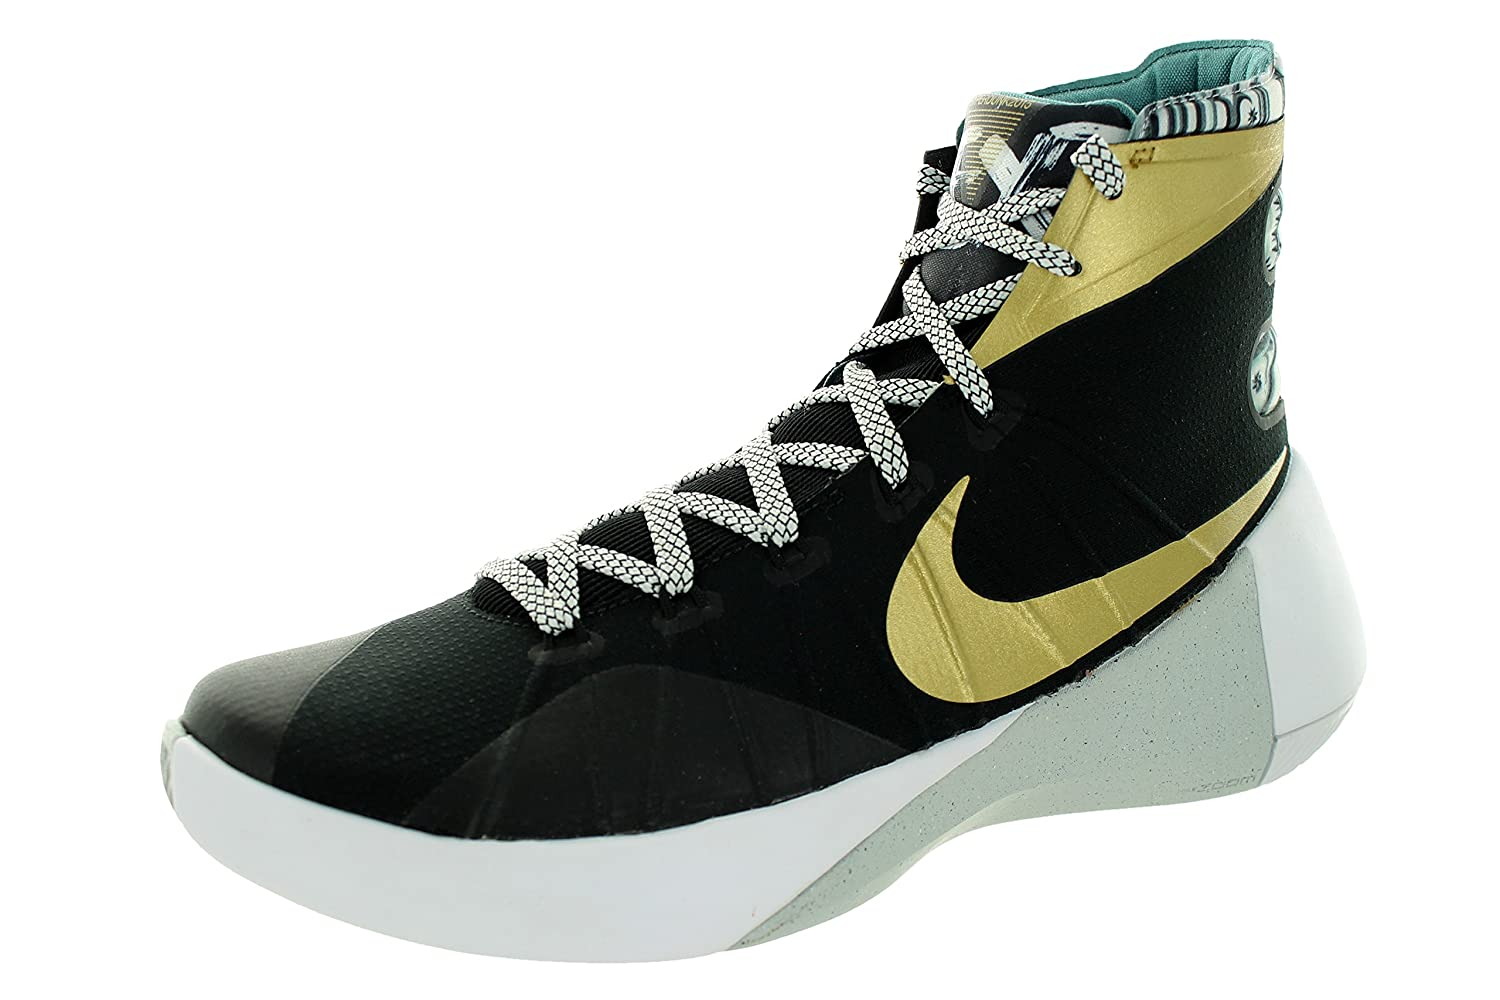 purchase cheap 4f62d f4f0f Nike Hyperdunk 2015 Lmtd Blk Mtllc Gld Lt Wld Mng Grn H Basketball Shoe 10  Men Us  Amazon.co.uk  Sports   Outdoors